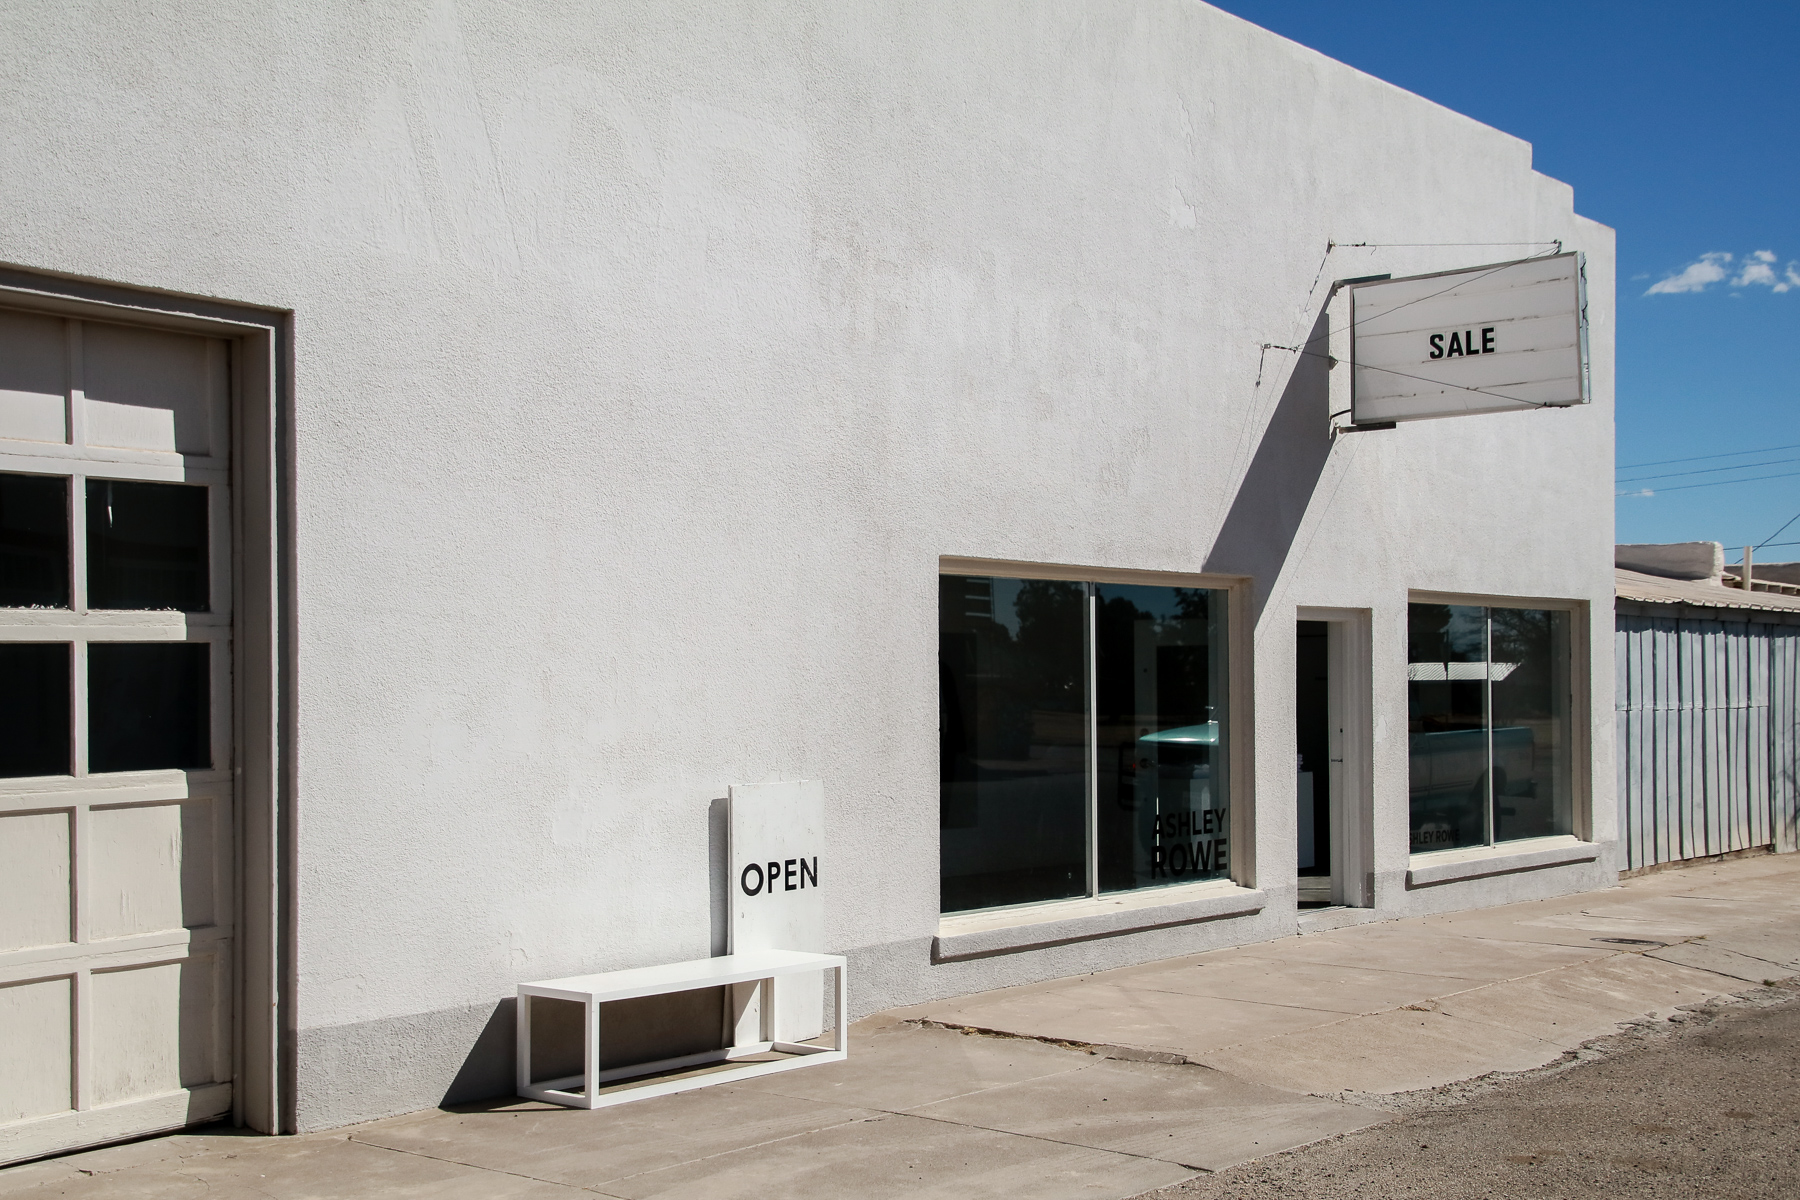 17-TX-journey-marfa111.jpg